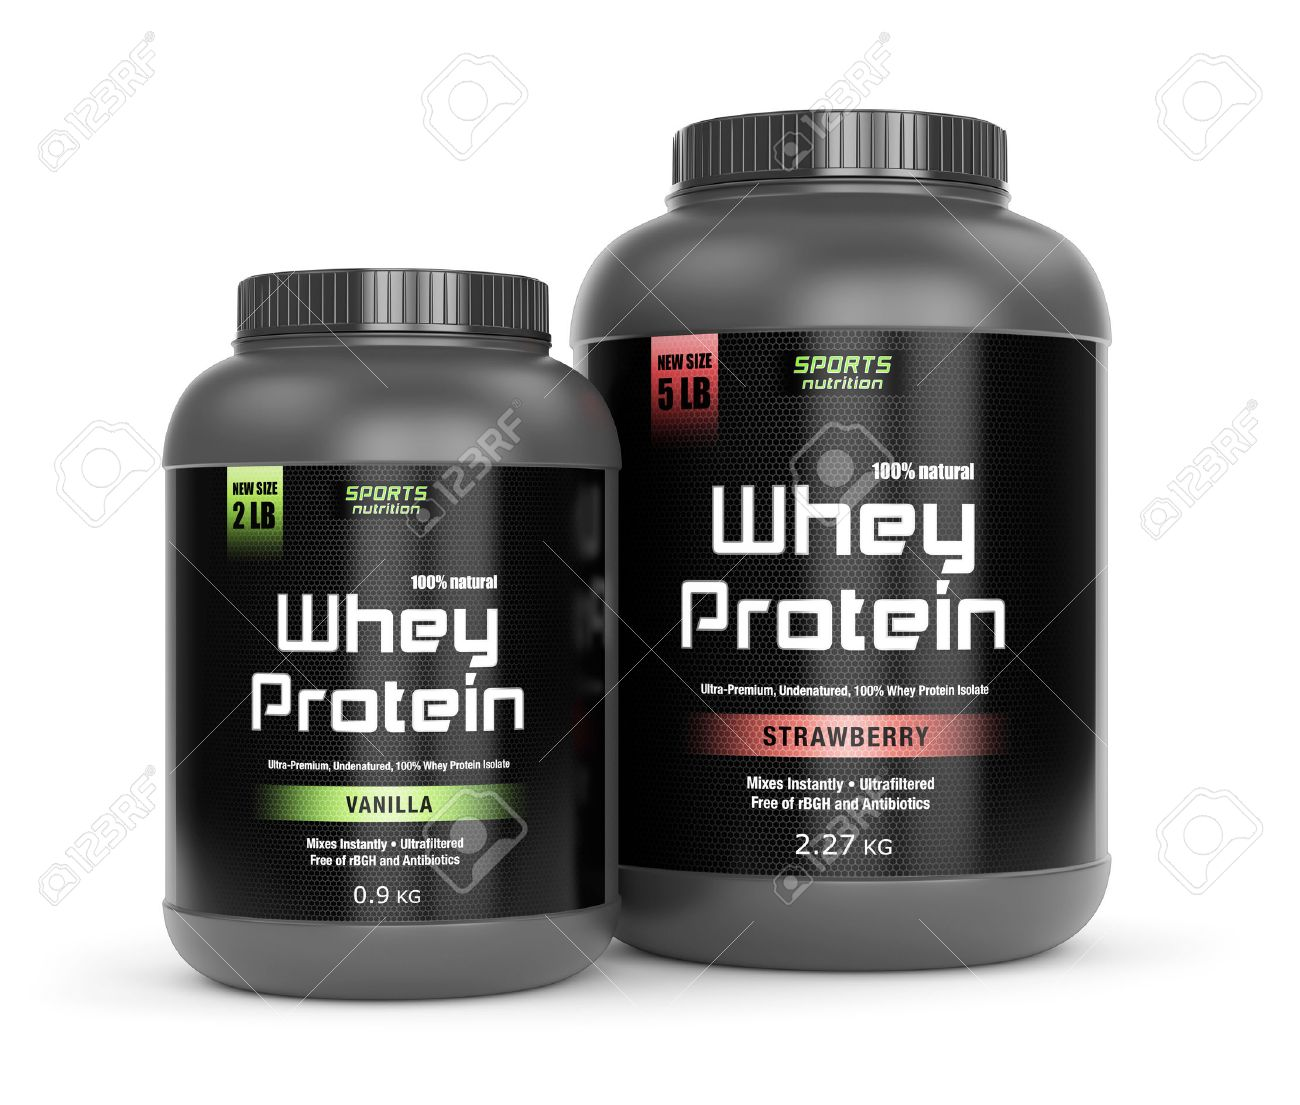 Sports Nutrition Bodybuilding Supplements Two Jars Of Vanilla Stock Photo Picture And Royalty Free Image Image 40310867